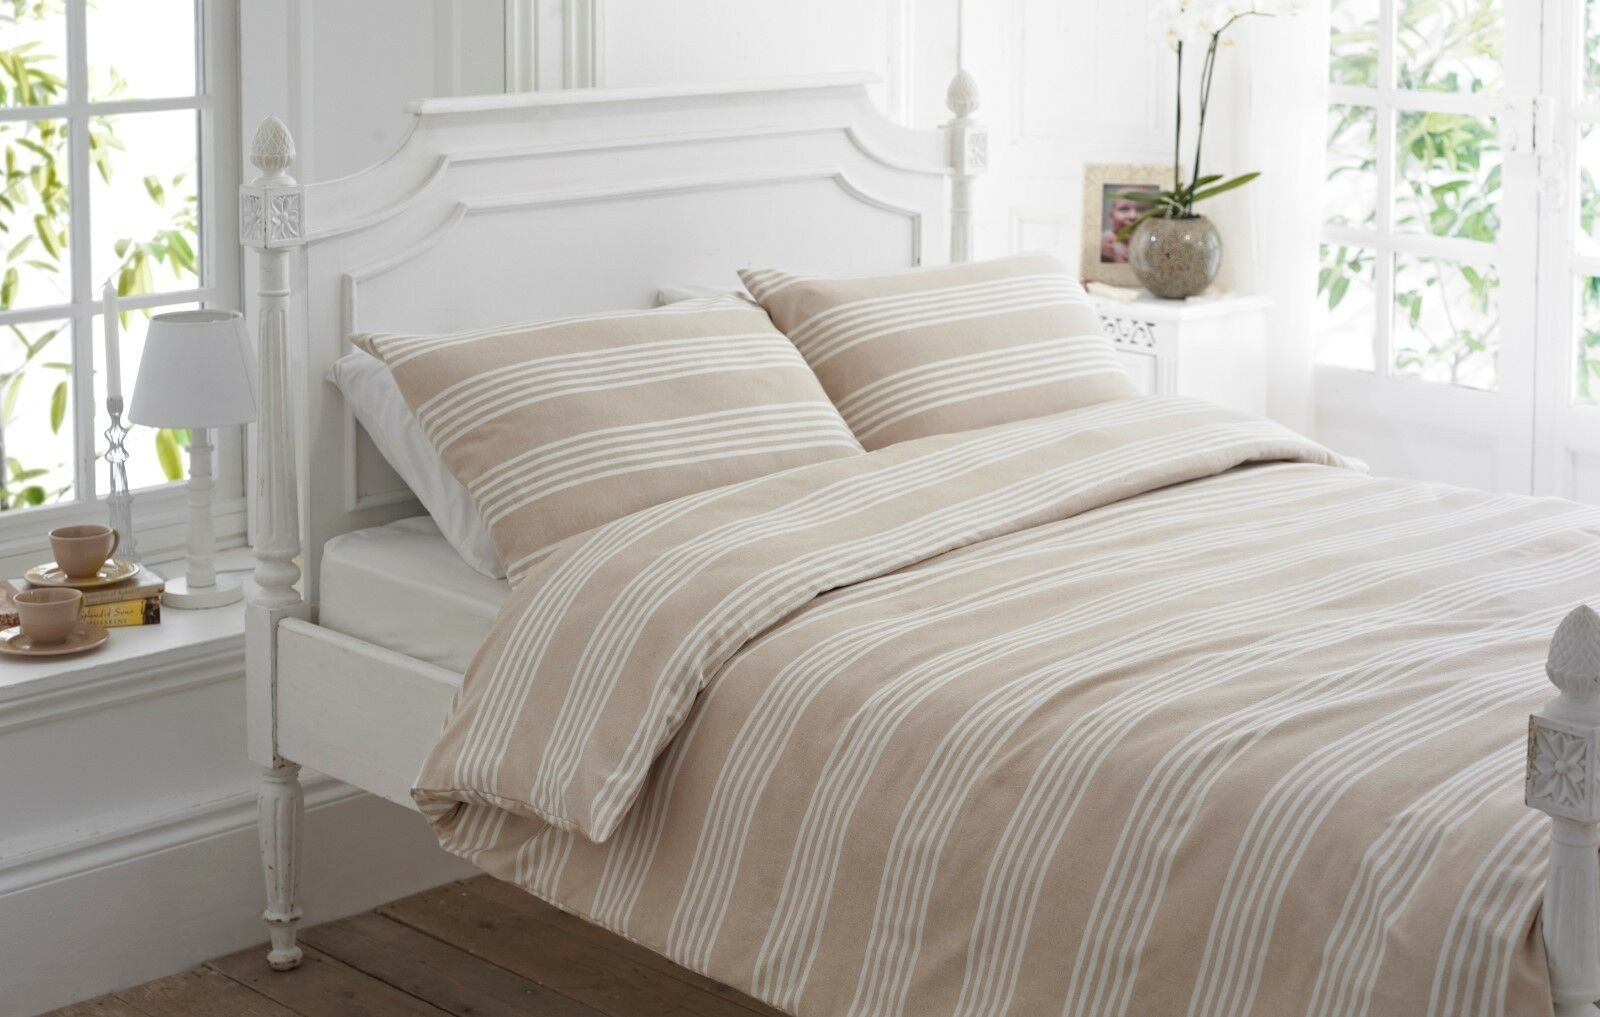 Beige & Weiß Stripe Luxury Flannelette Brushed Cotton Duvet Cover Set - BOWMORE